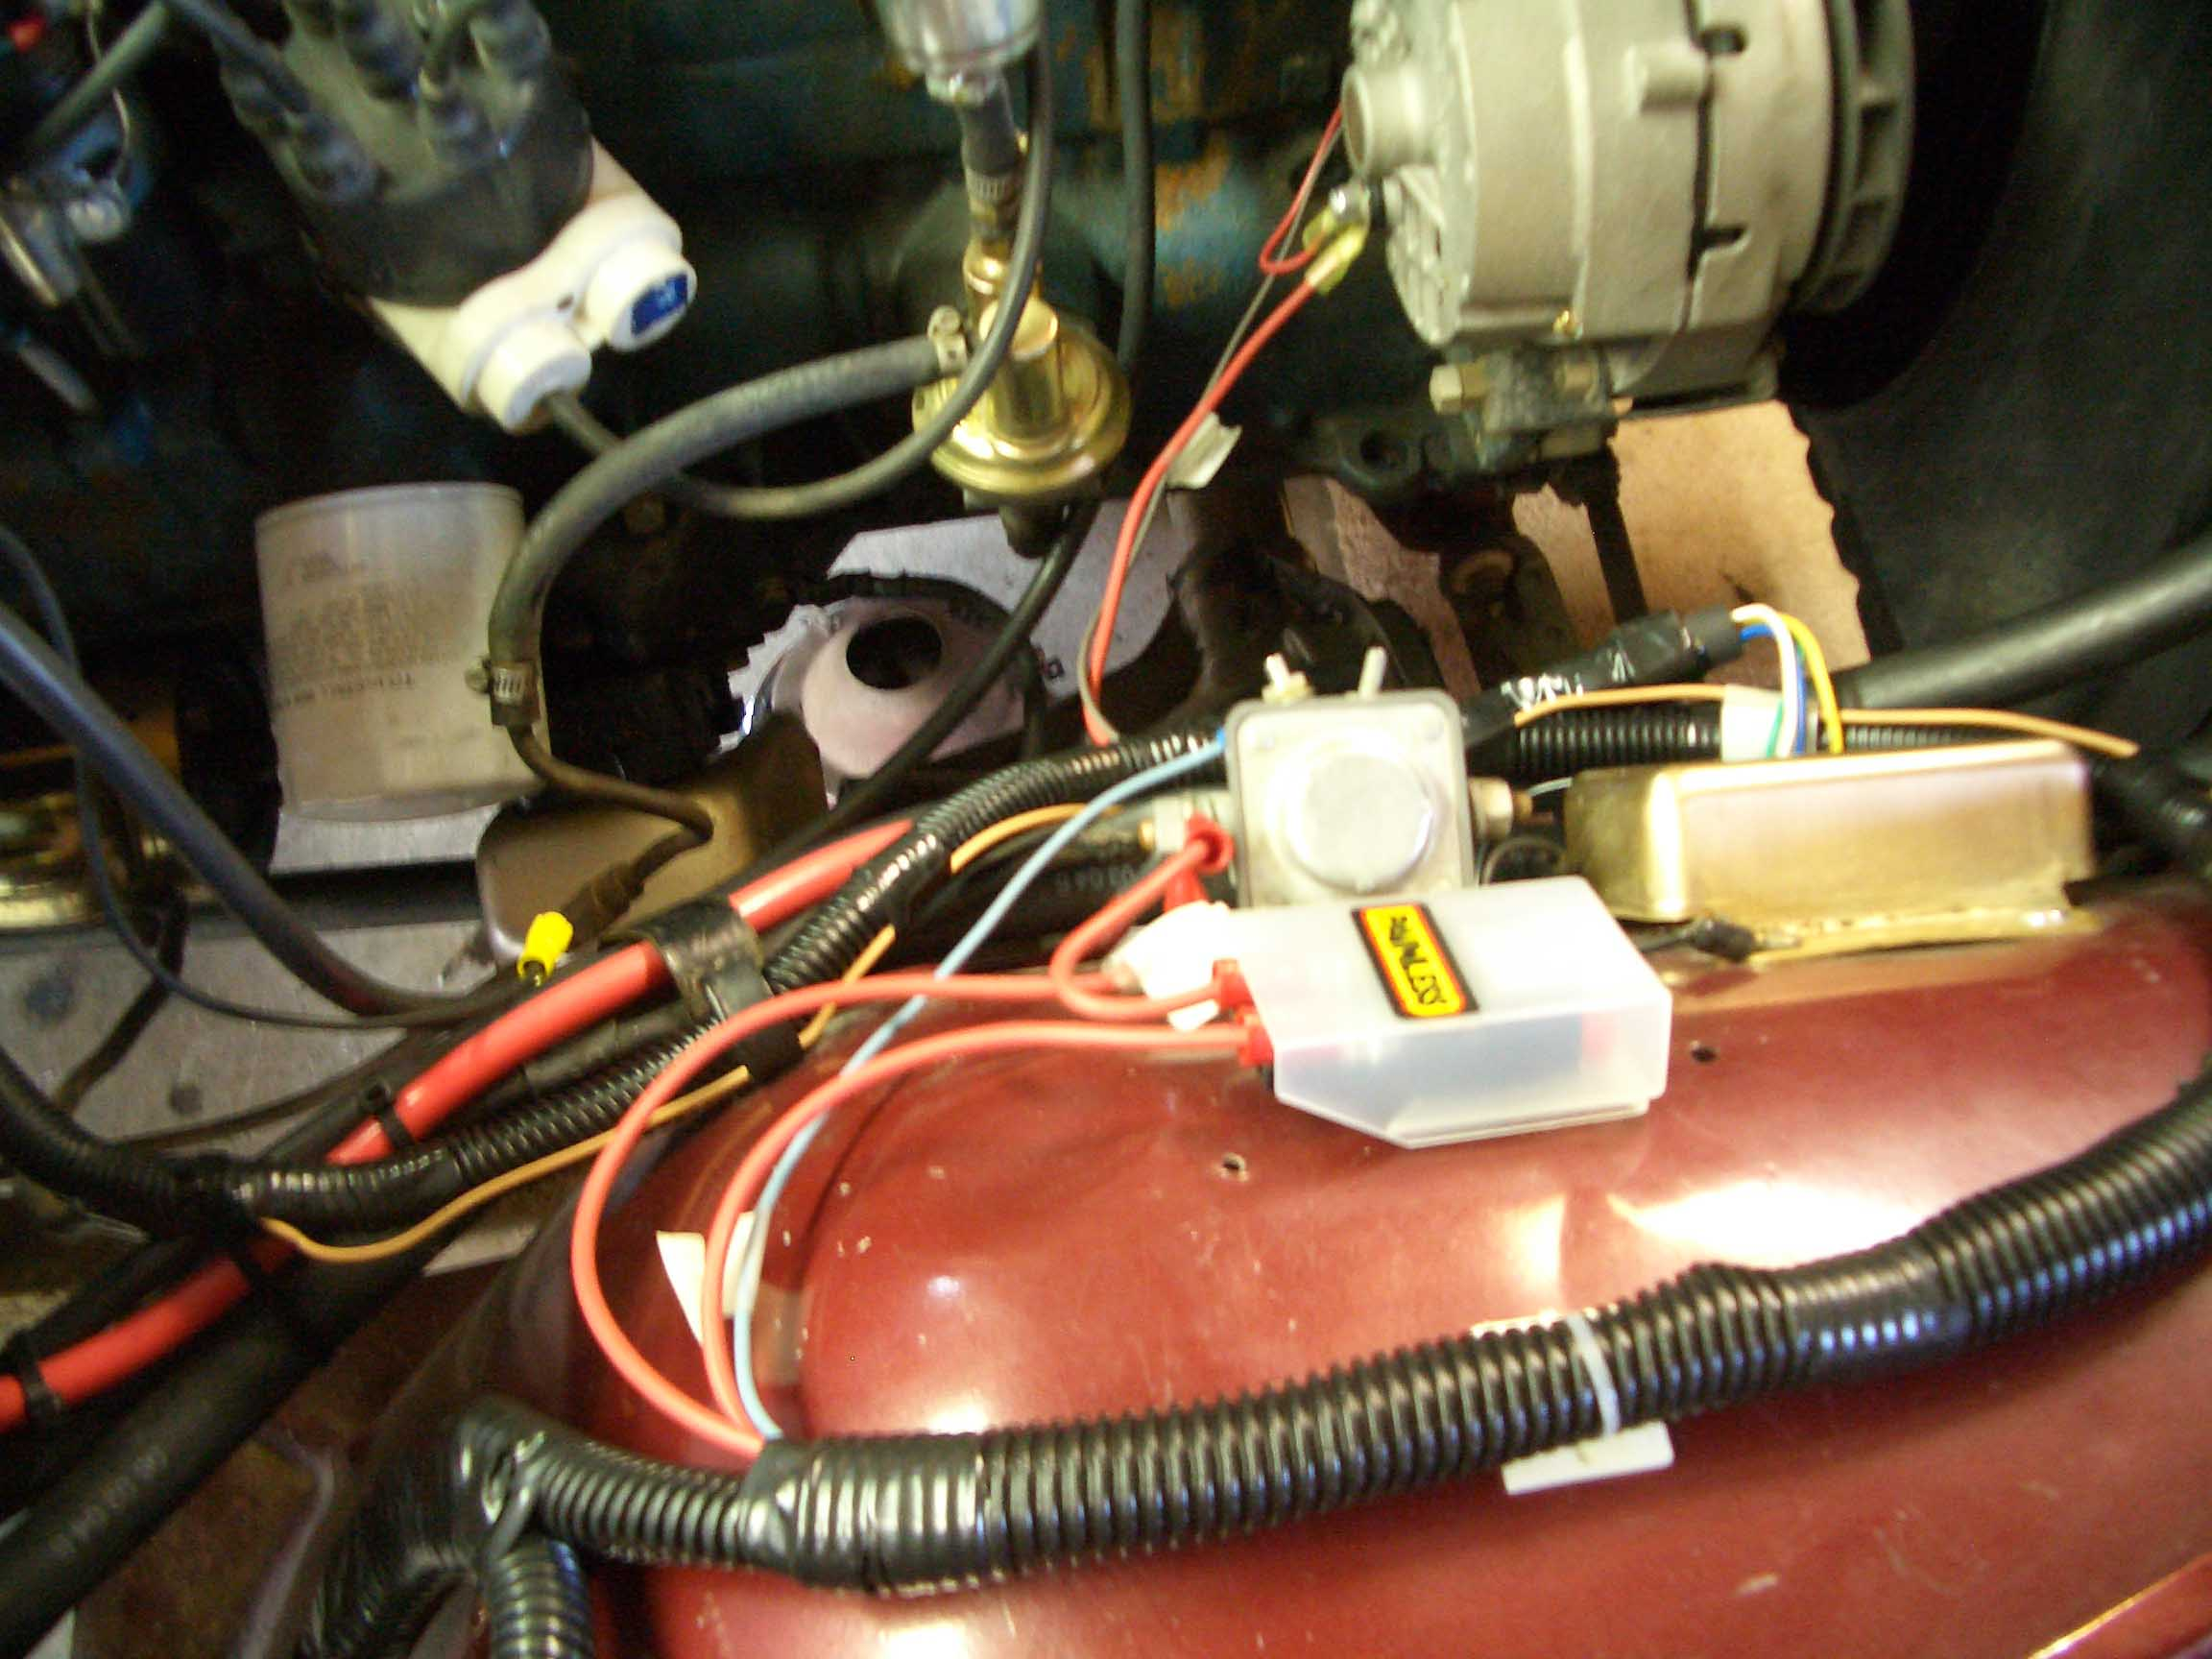 CIMG2299 certifiablejeep com hints full wiring harness replacement wiring harness replacement at fashall.co